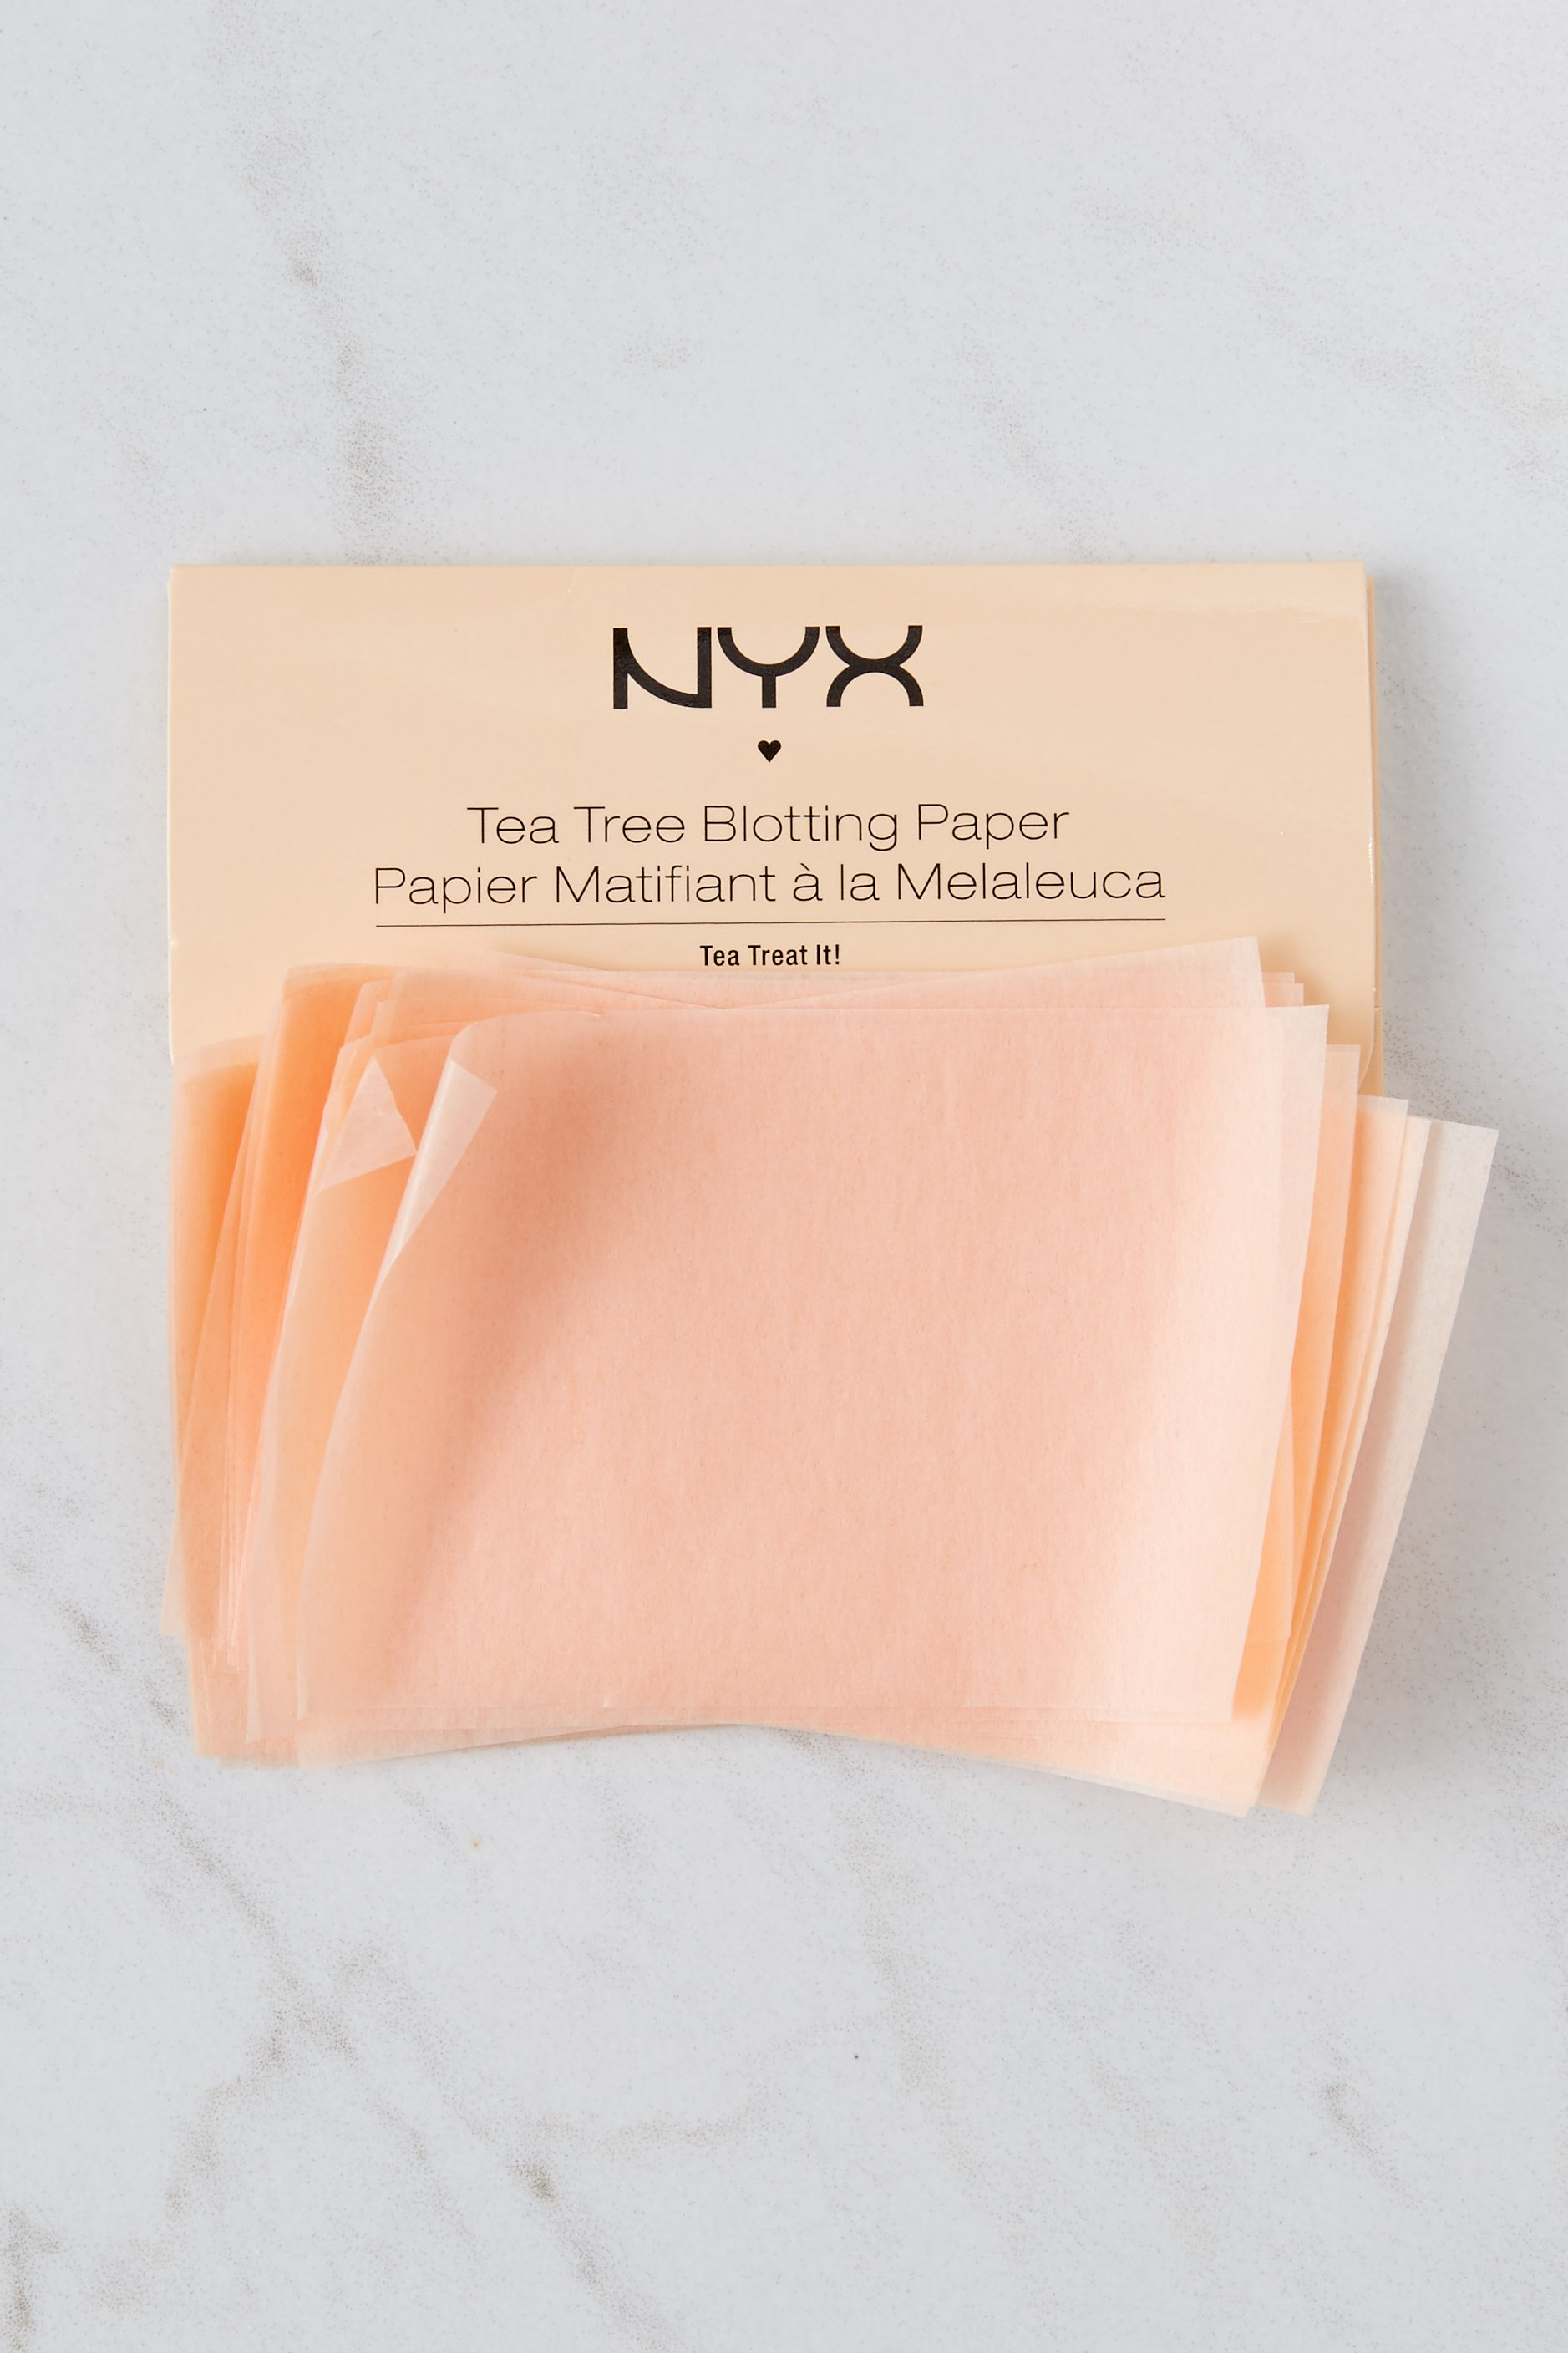 NYX Oil Blotting Sheets $6.00